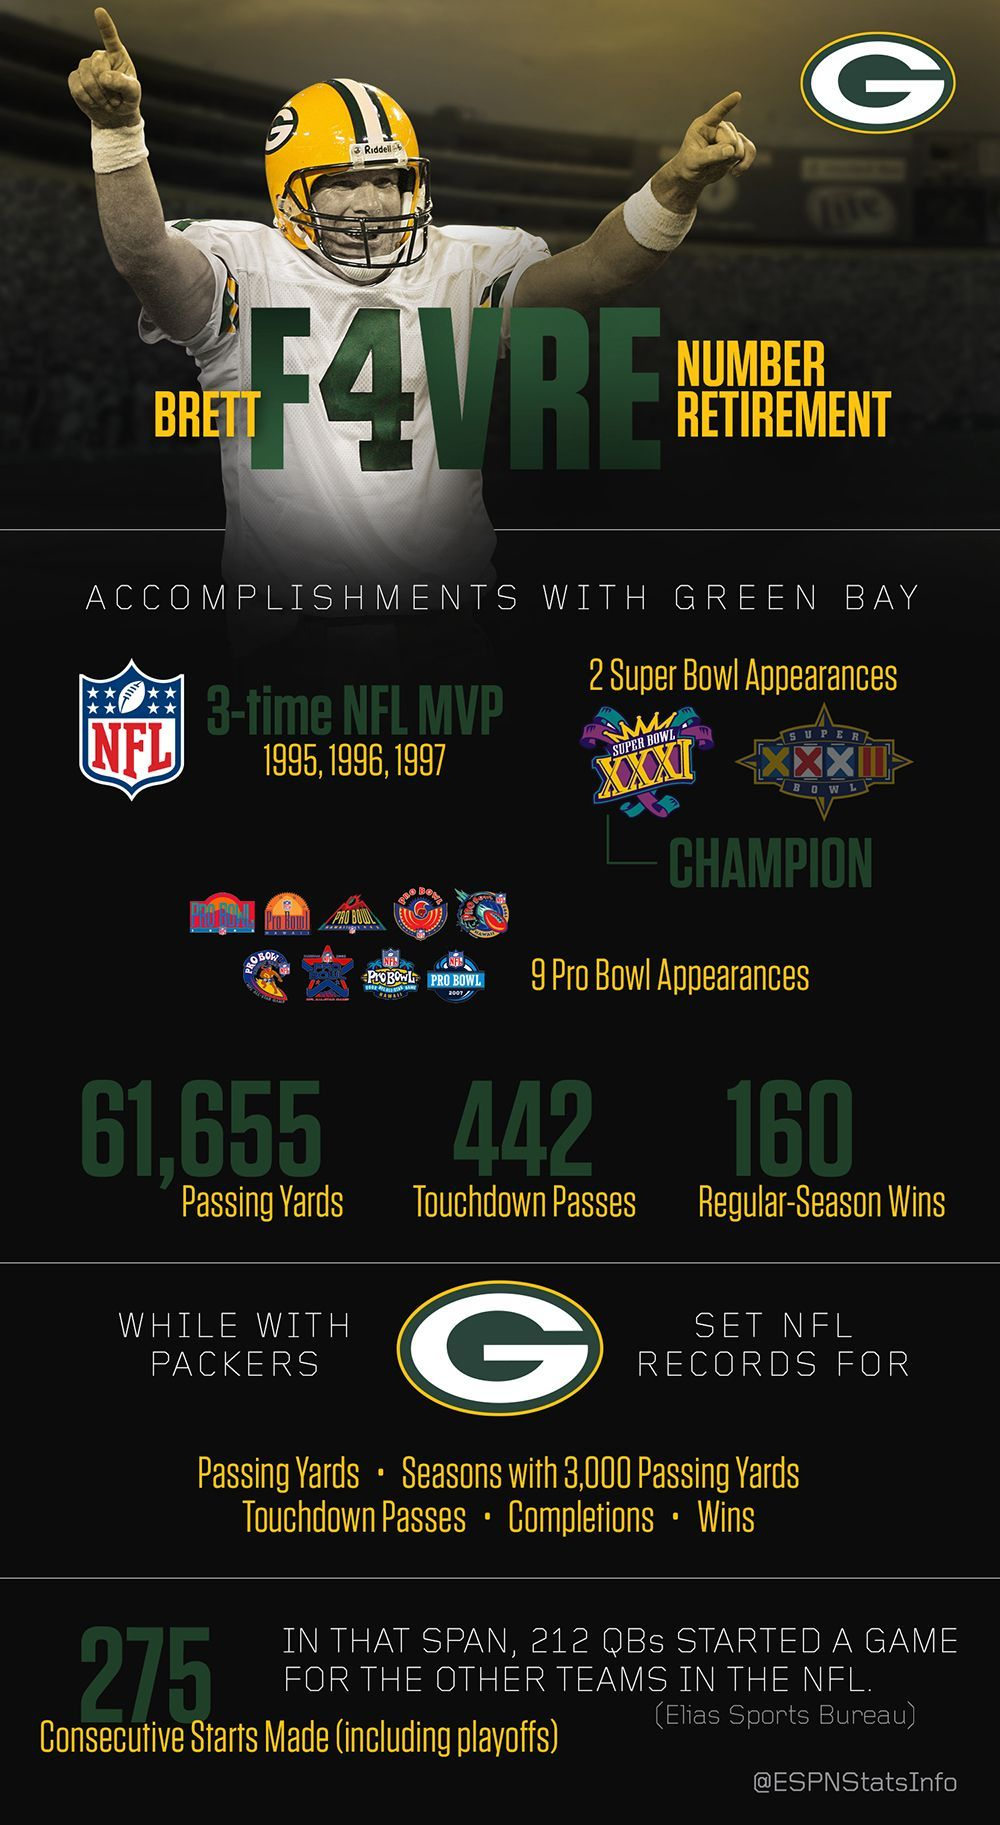 1e96f7cf4a5 The Packers retired Brett Favre's No. 4 jersey on Thanksgiving. Here's a  look back at his career in Green Bay.